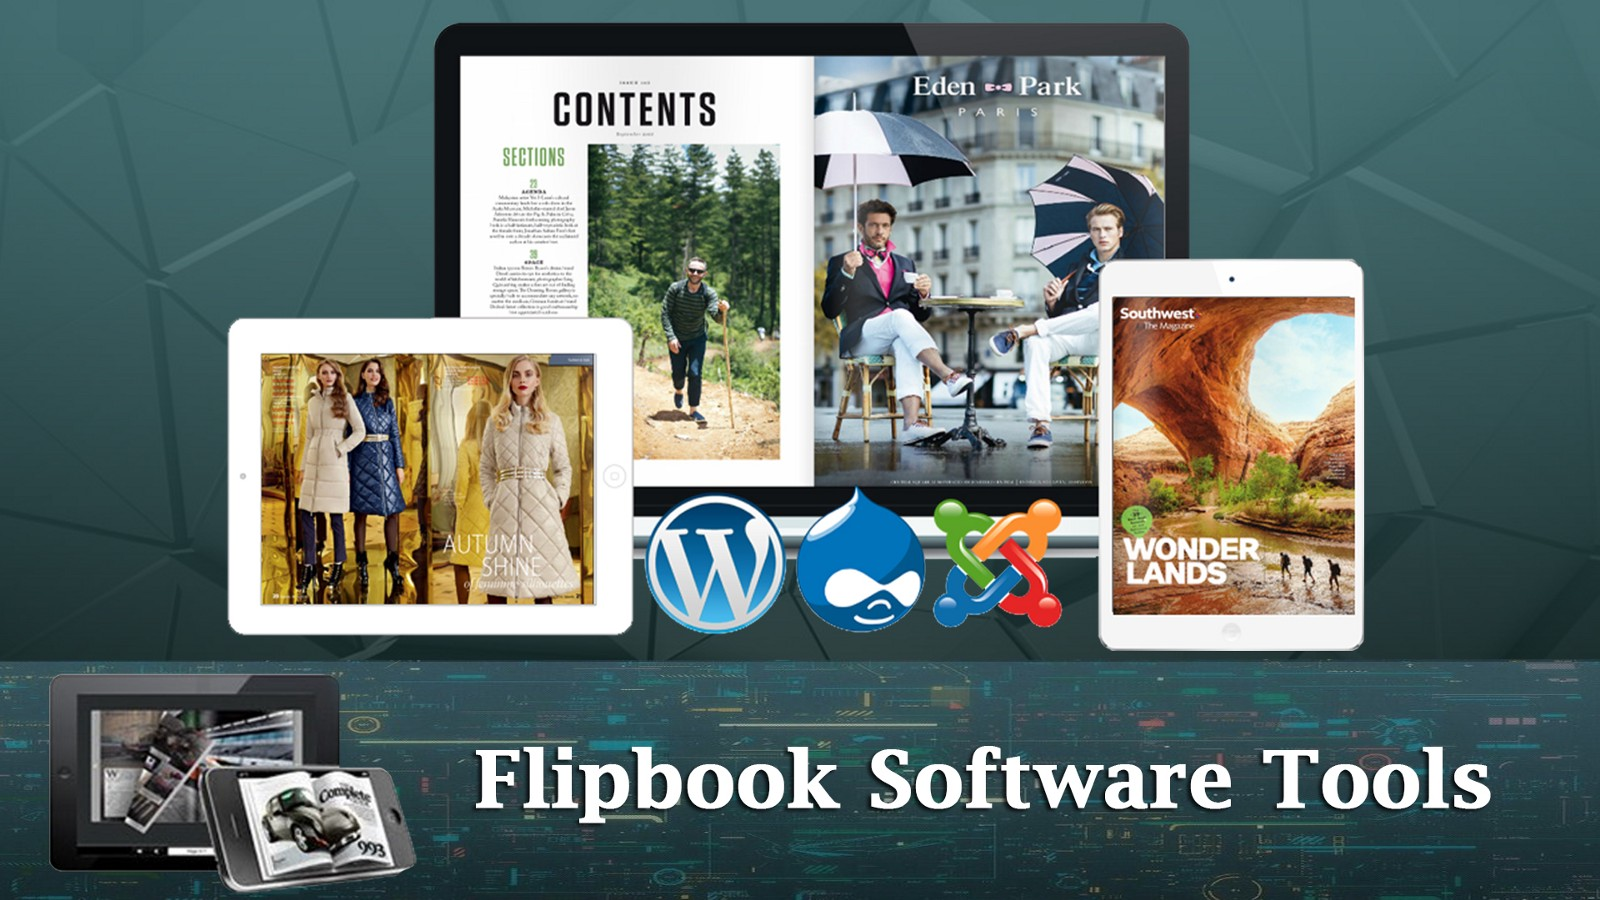 Flipbook Software Tools | Flip Book Maker | Online Flipbook Tools